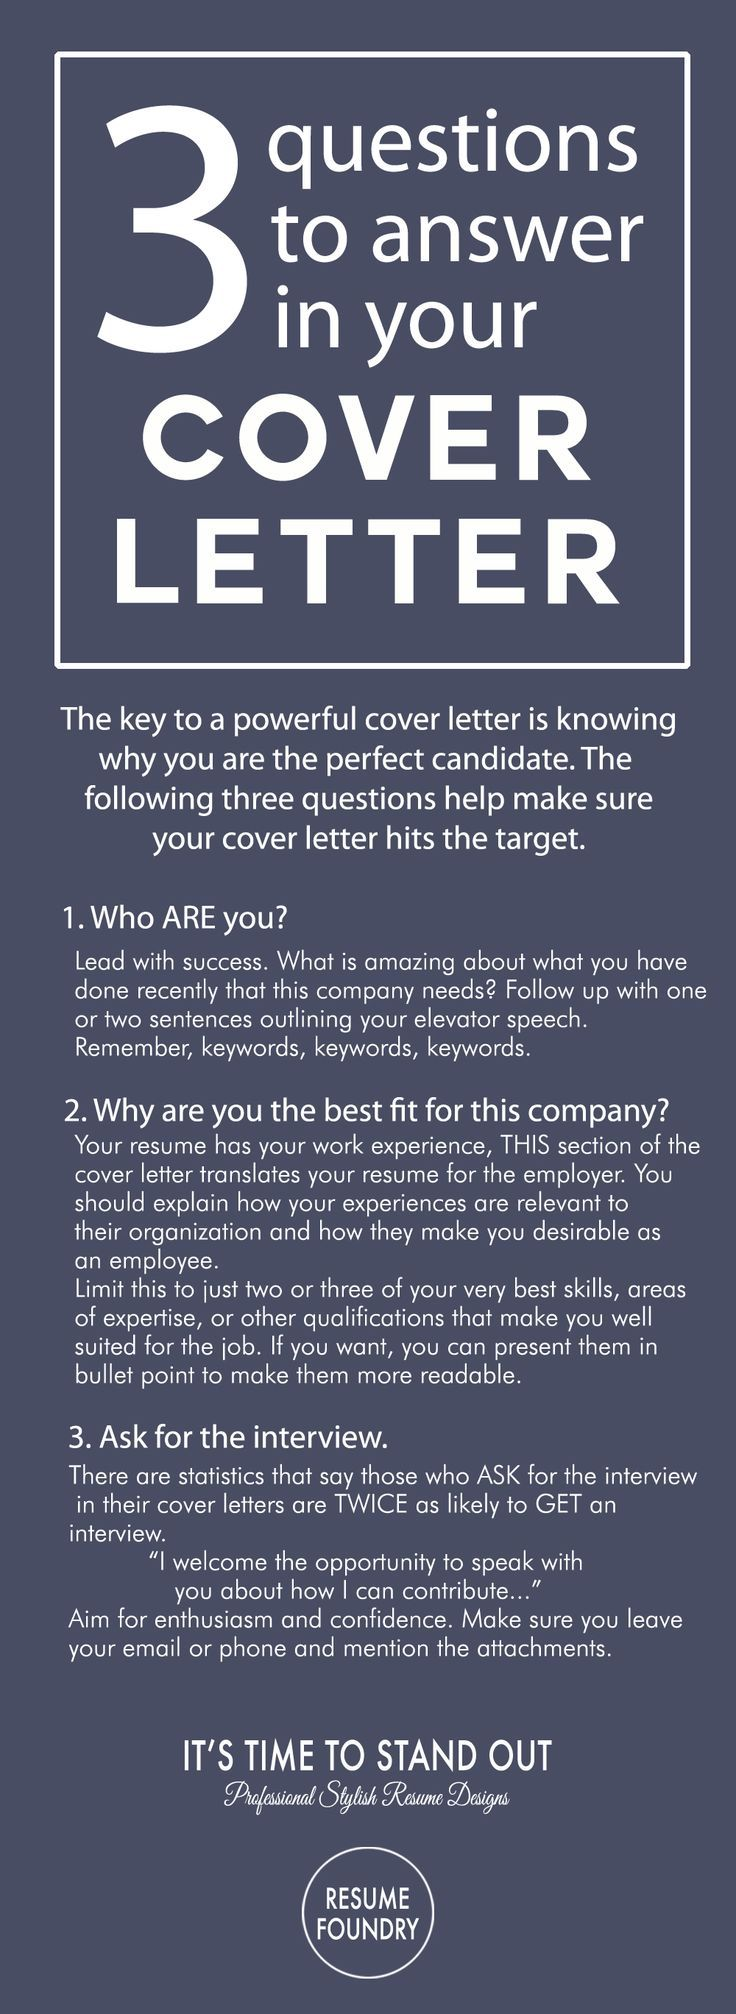 Cover Letter For D Animation  Google Search  Jb Cover Letter